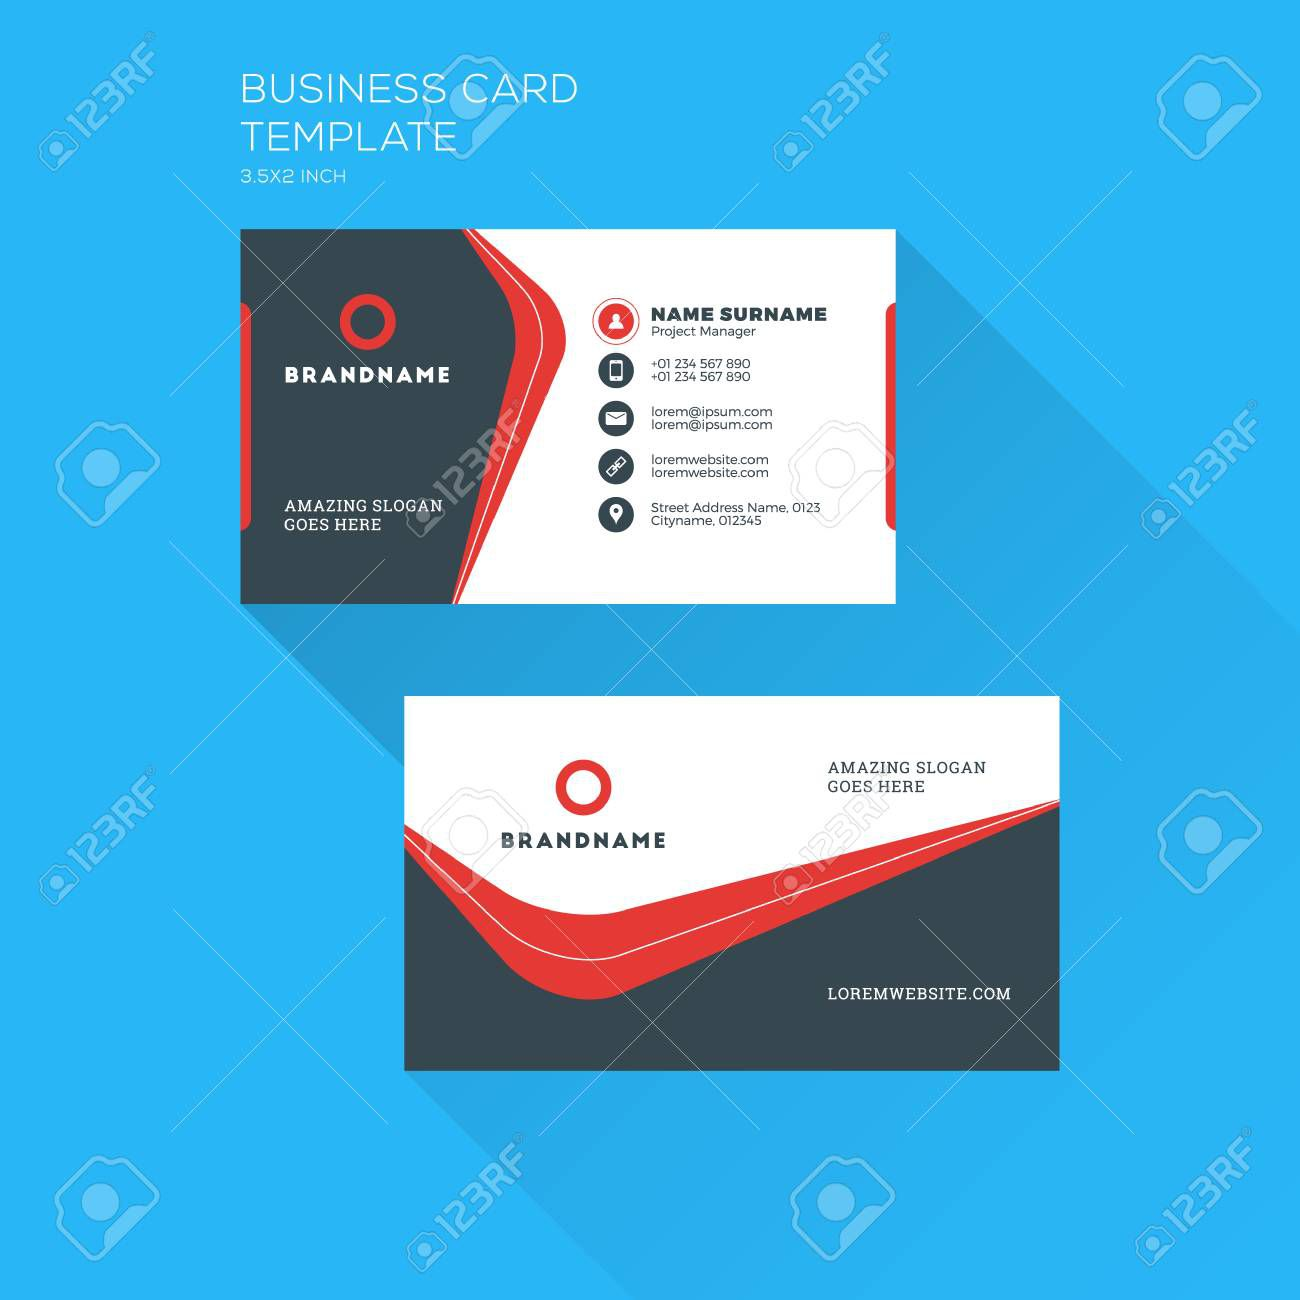 001 Exceptional Personal Busines Card Template Picture  Trainer Design Psd FitnesFull